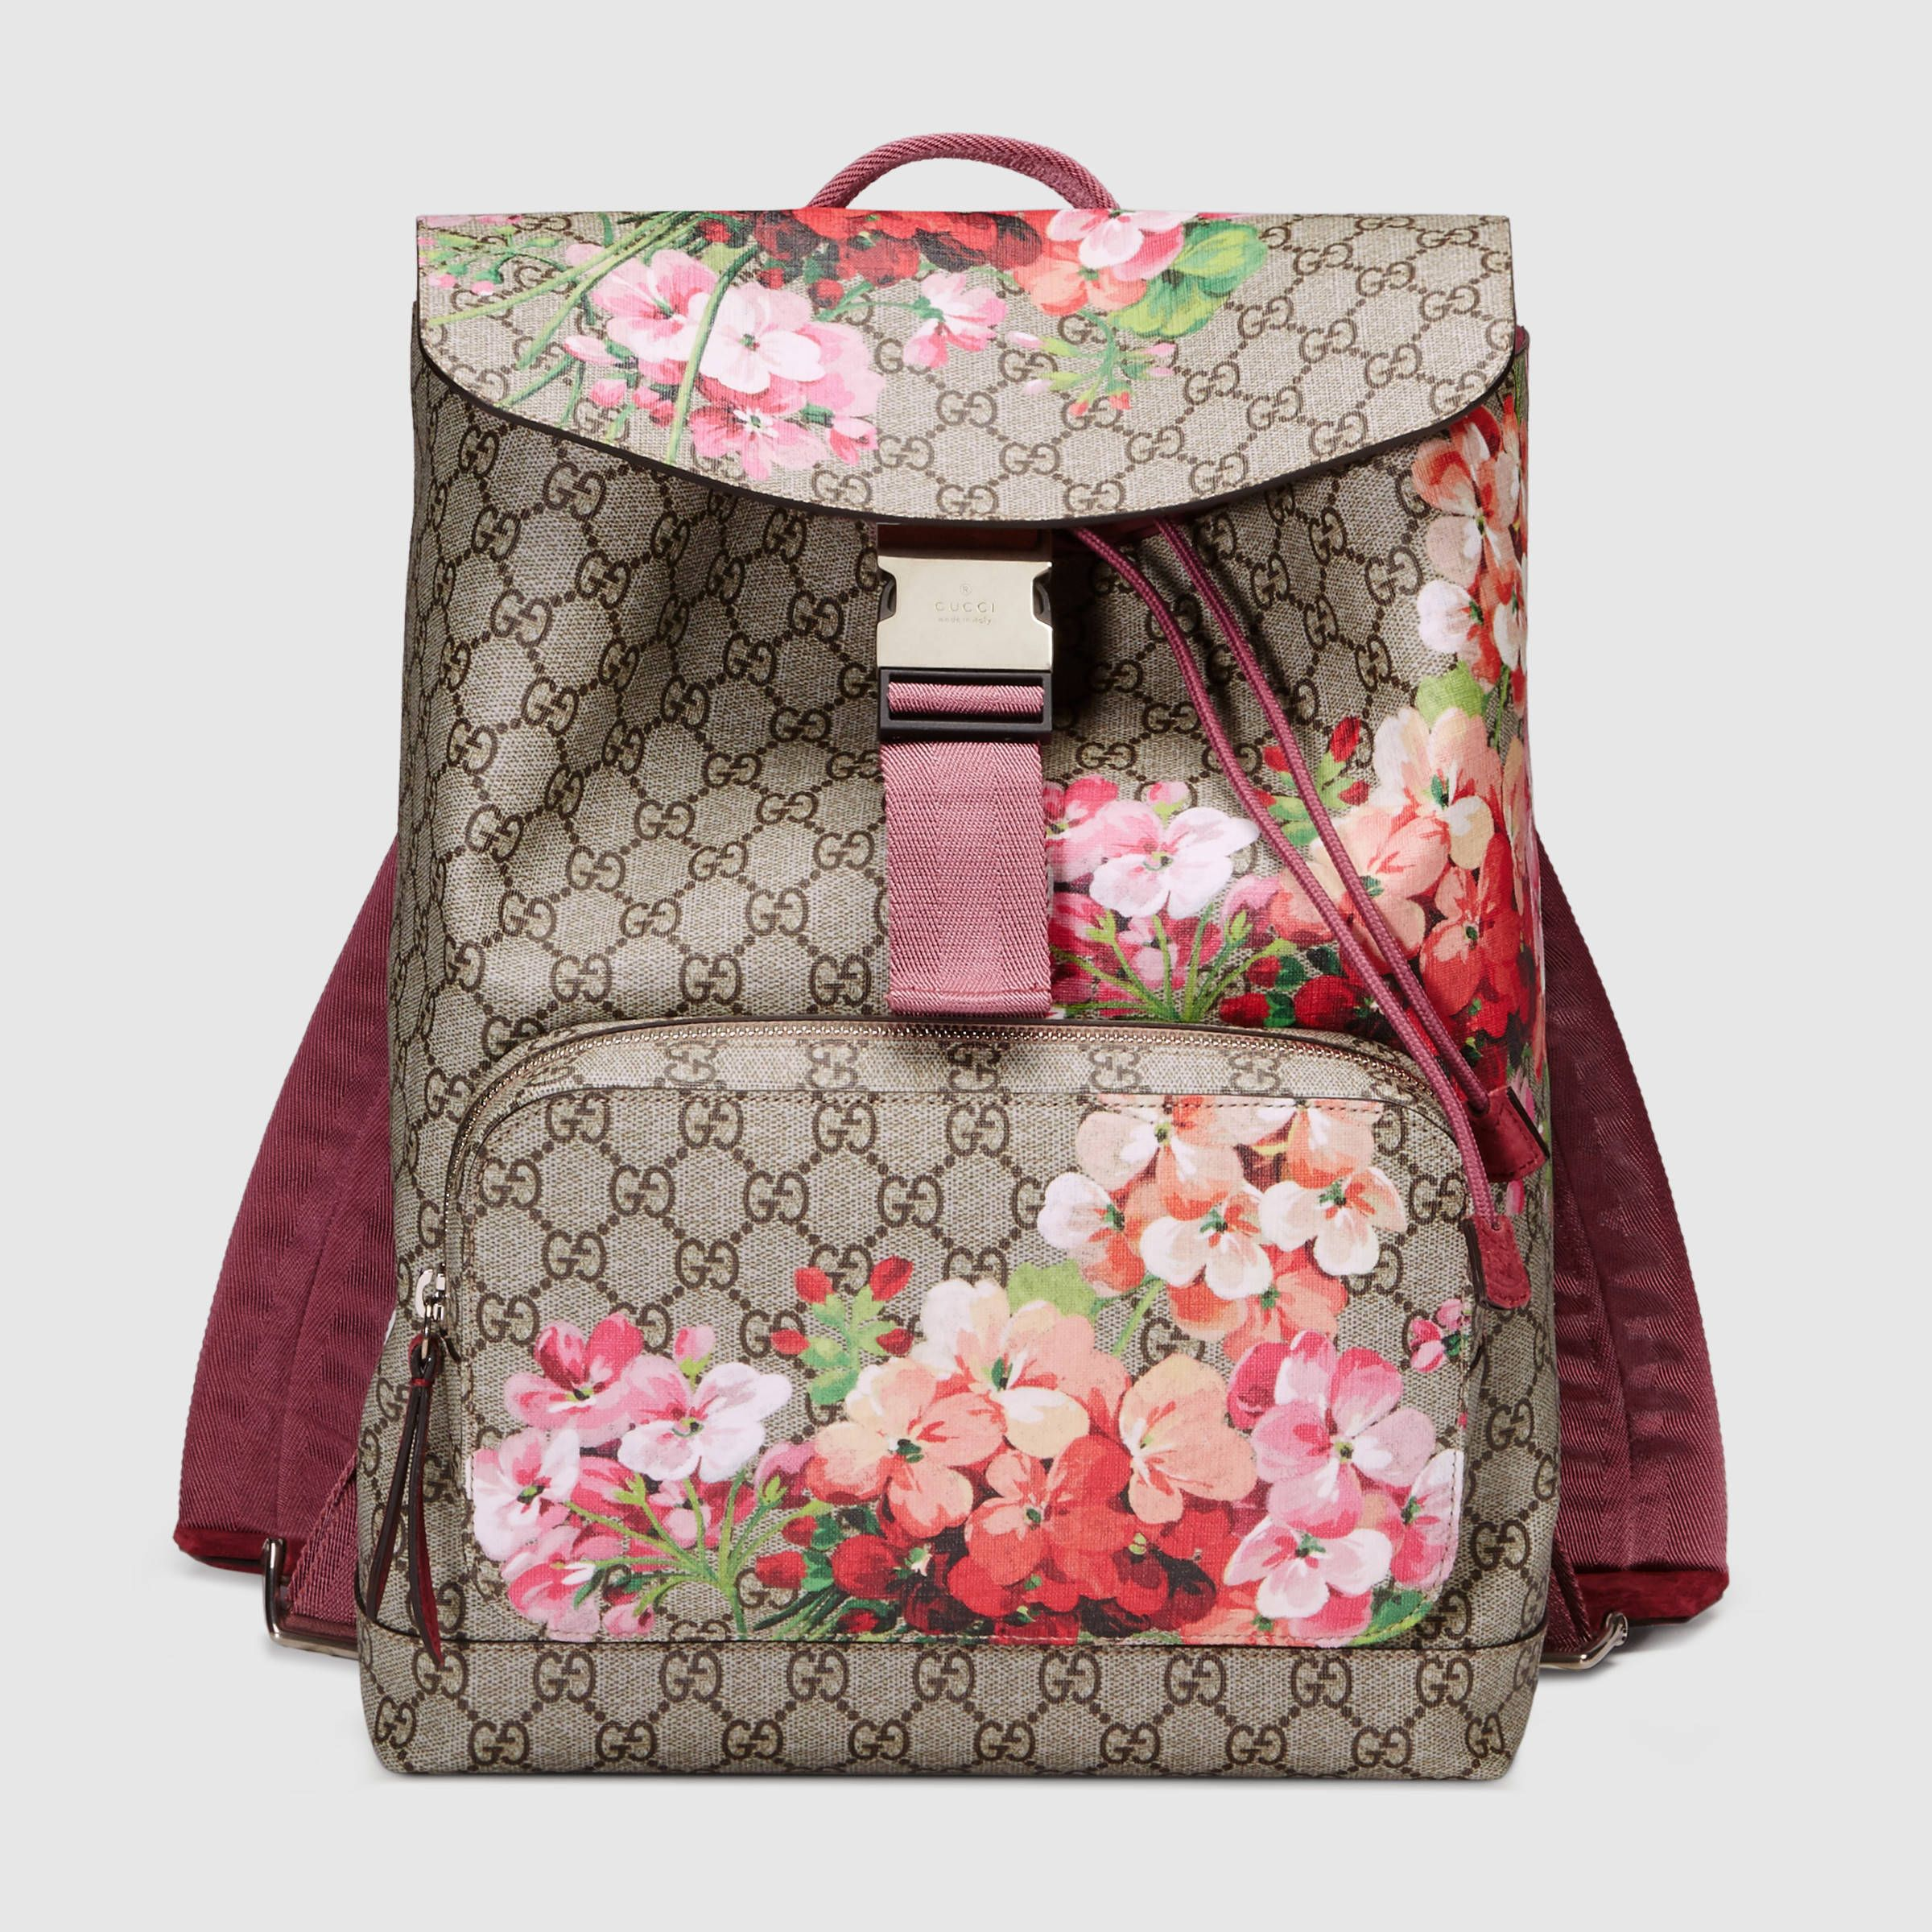 GG Blooms backpack - Gucci Women s Backpacks 405019KU2BN8693 ... e008a24b676a1